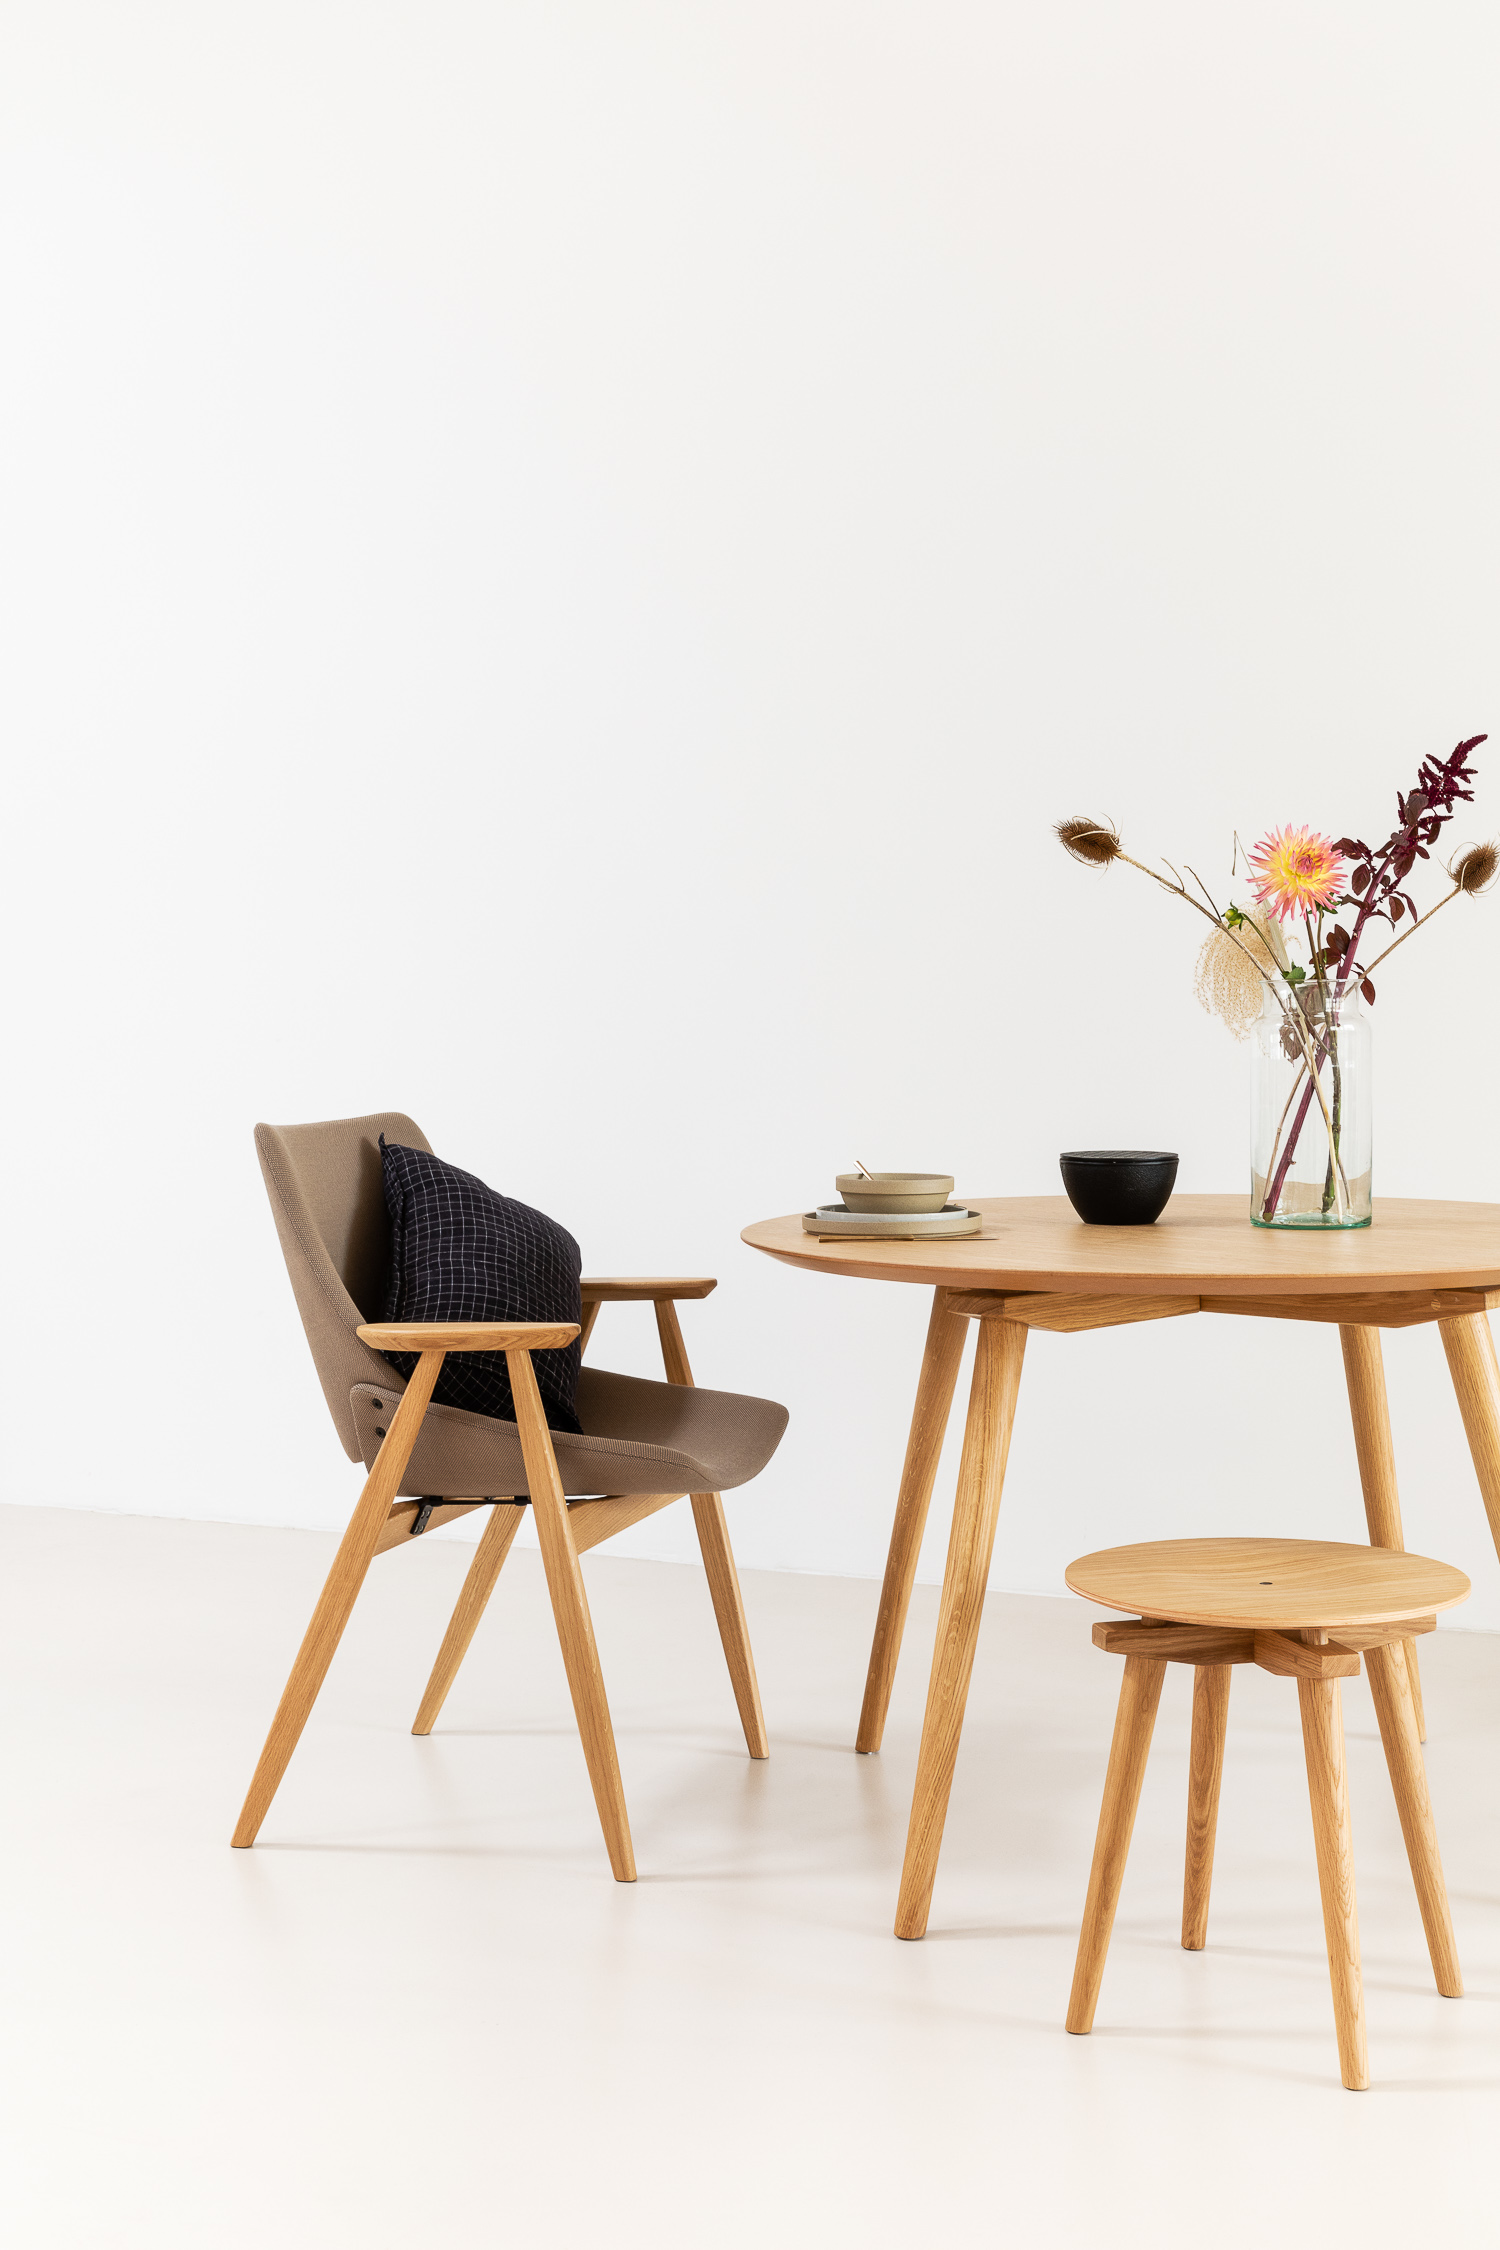 Rex Kralj 'Round CC' Table, 'Low CC' Stool, and 'Shell' Lounge Armchair with Wooden Frame